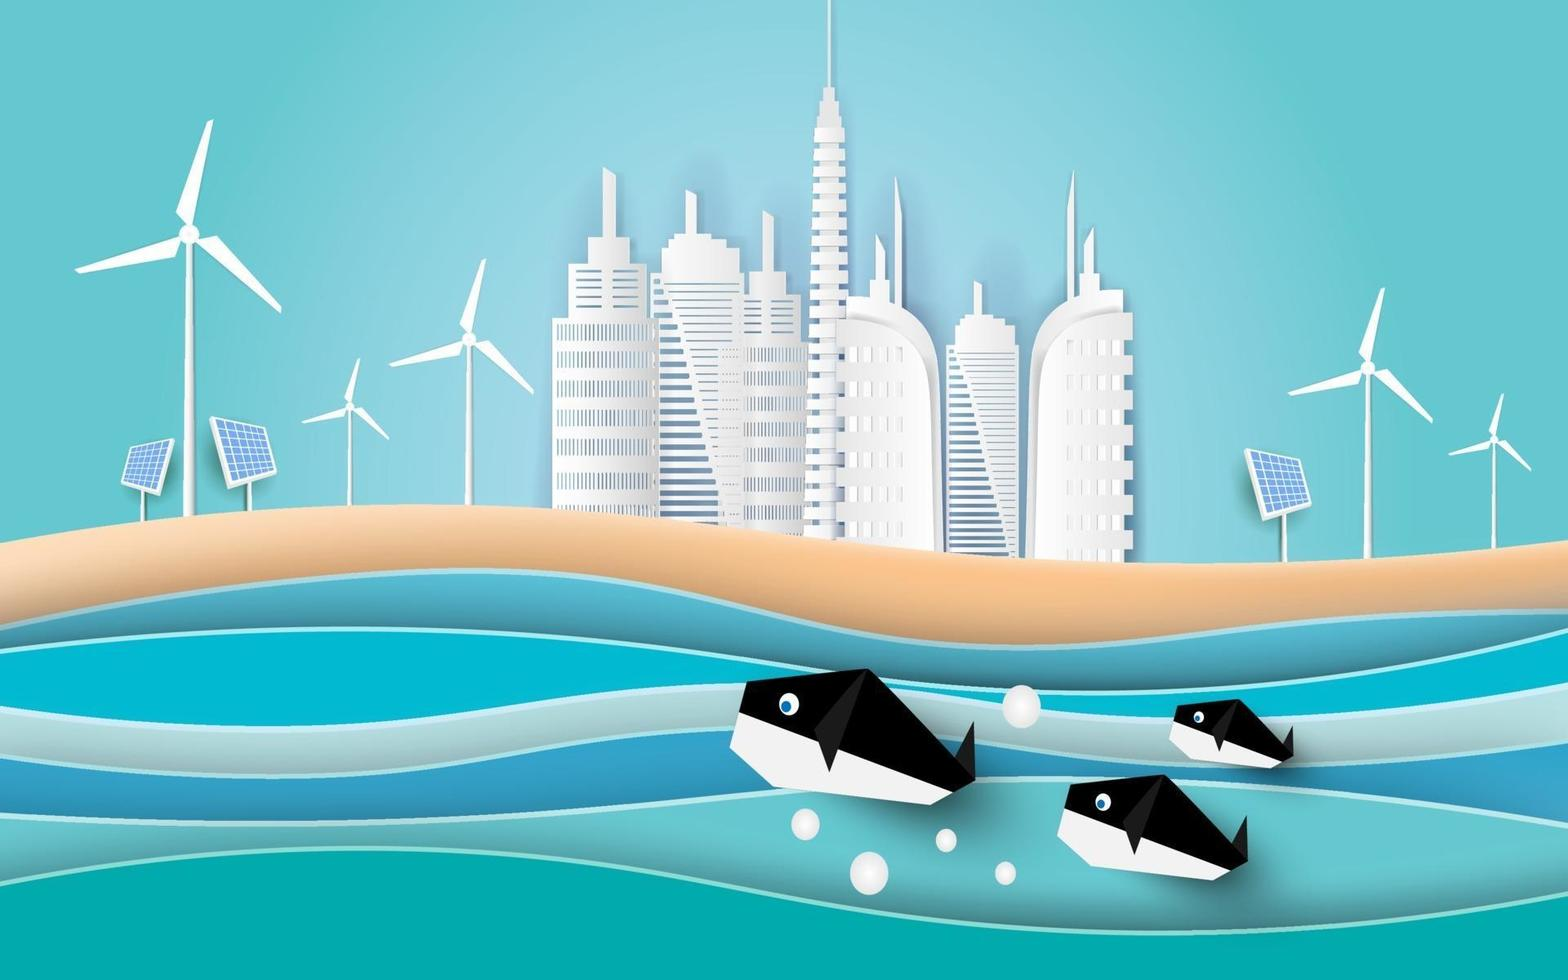 Whales swim in the sea with Buildings on the beach. Paper art style. vector